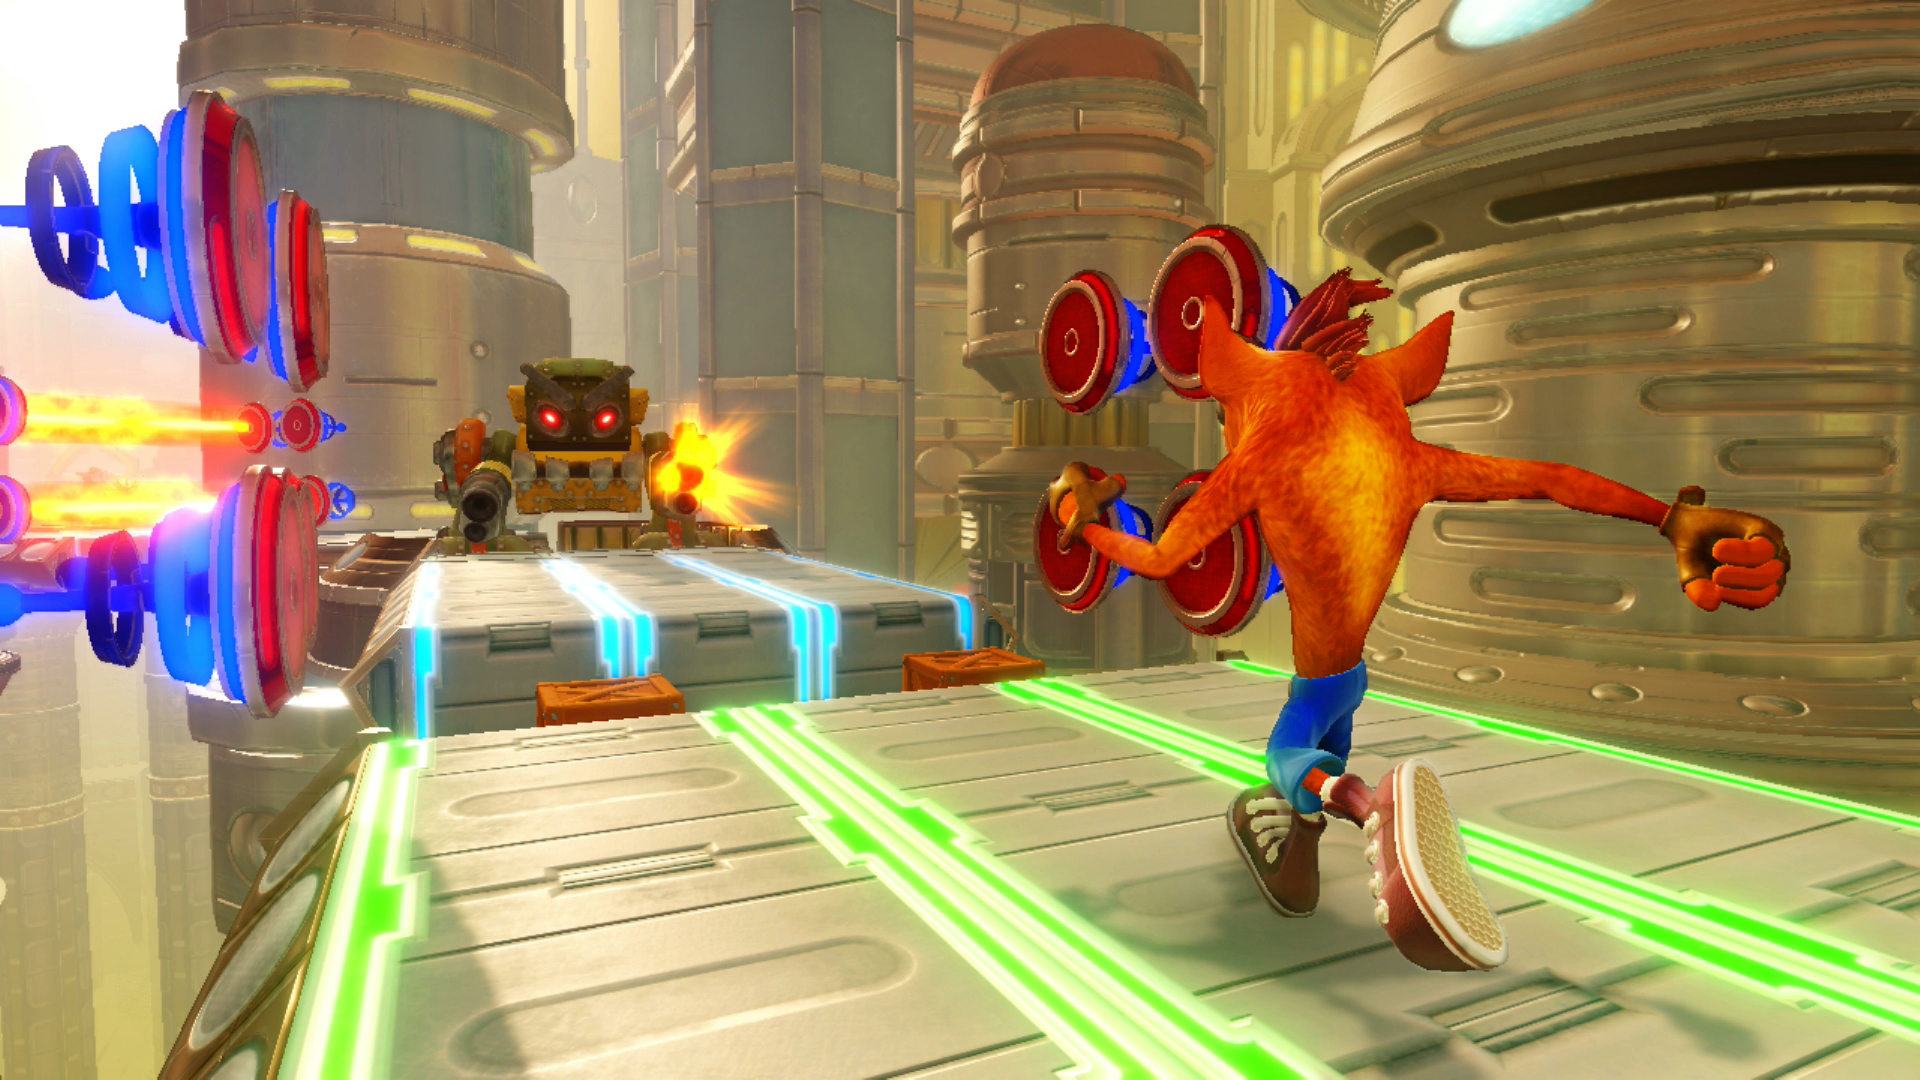 Crash Bandicoot N. Sane Trilogy looks amazing in 4K and on Switch screenshot